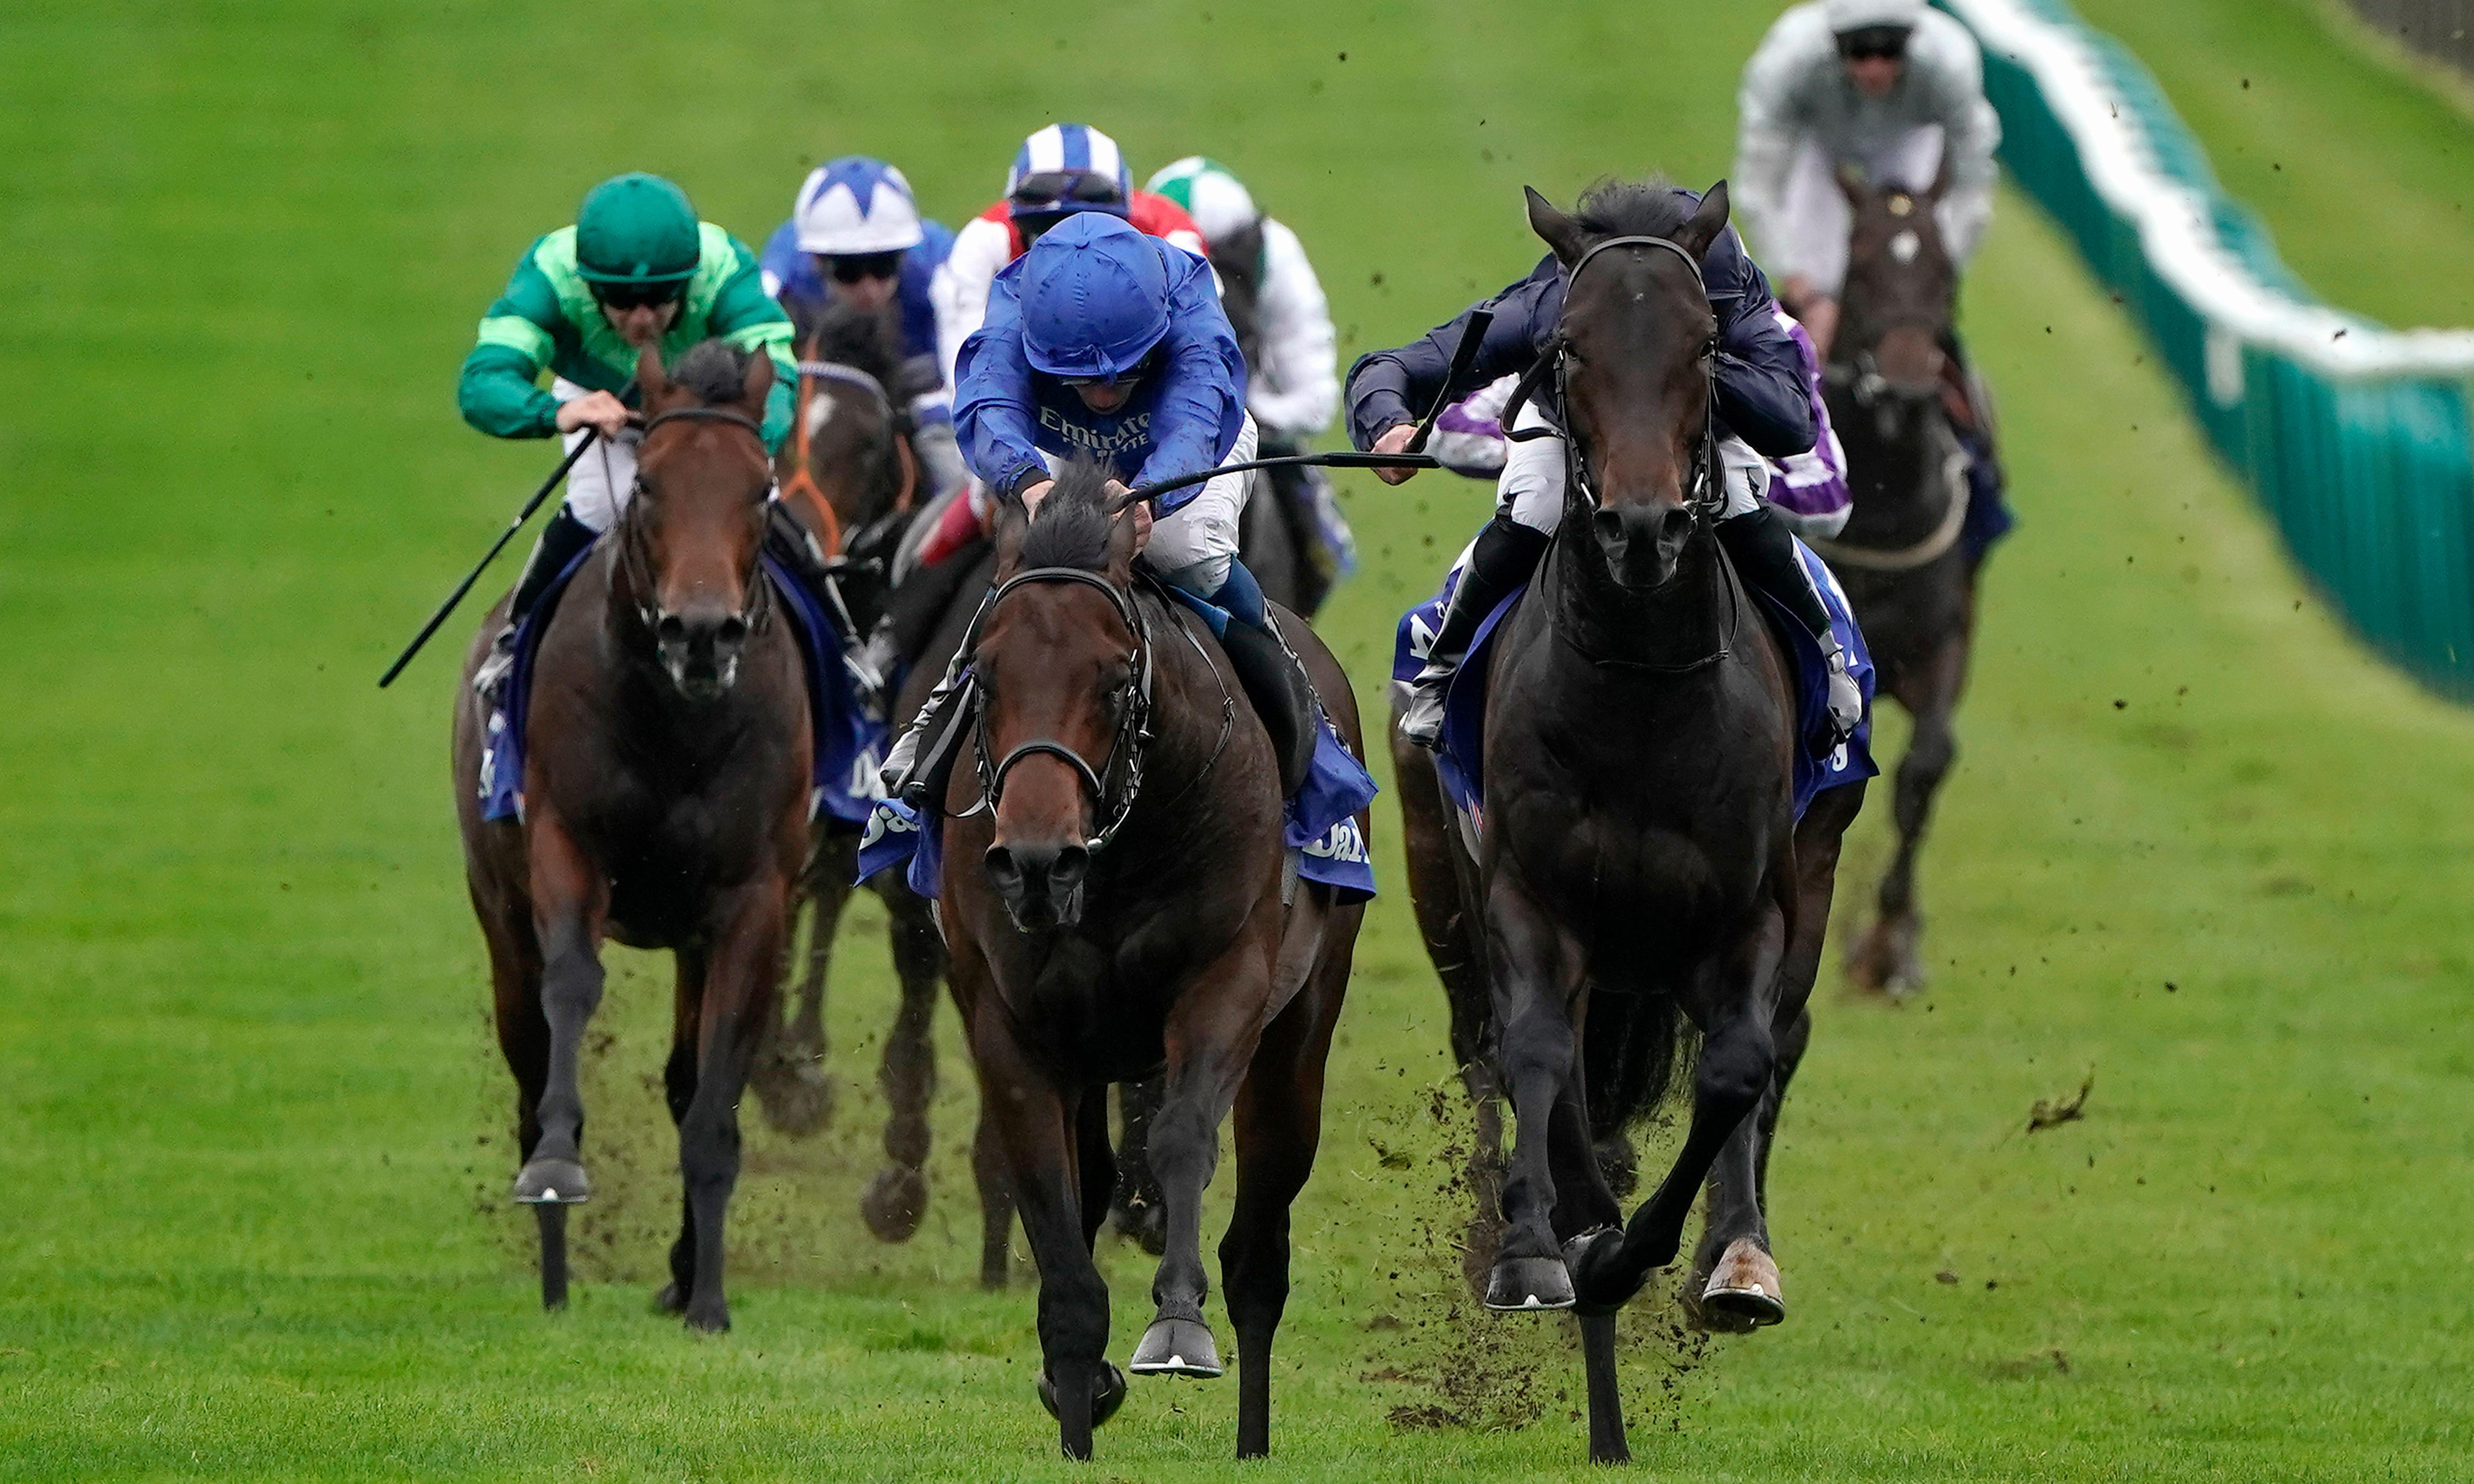 Relief and elation as Pinatubo stays unbeaten with Dewhurst win